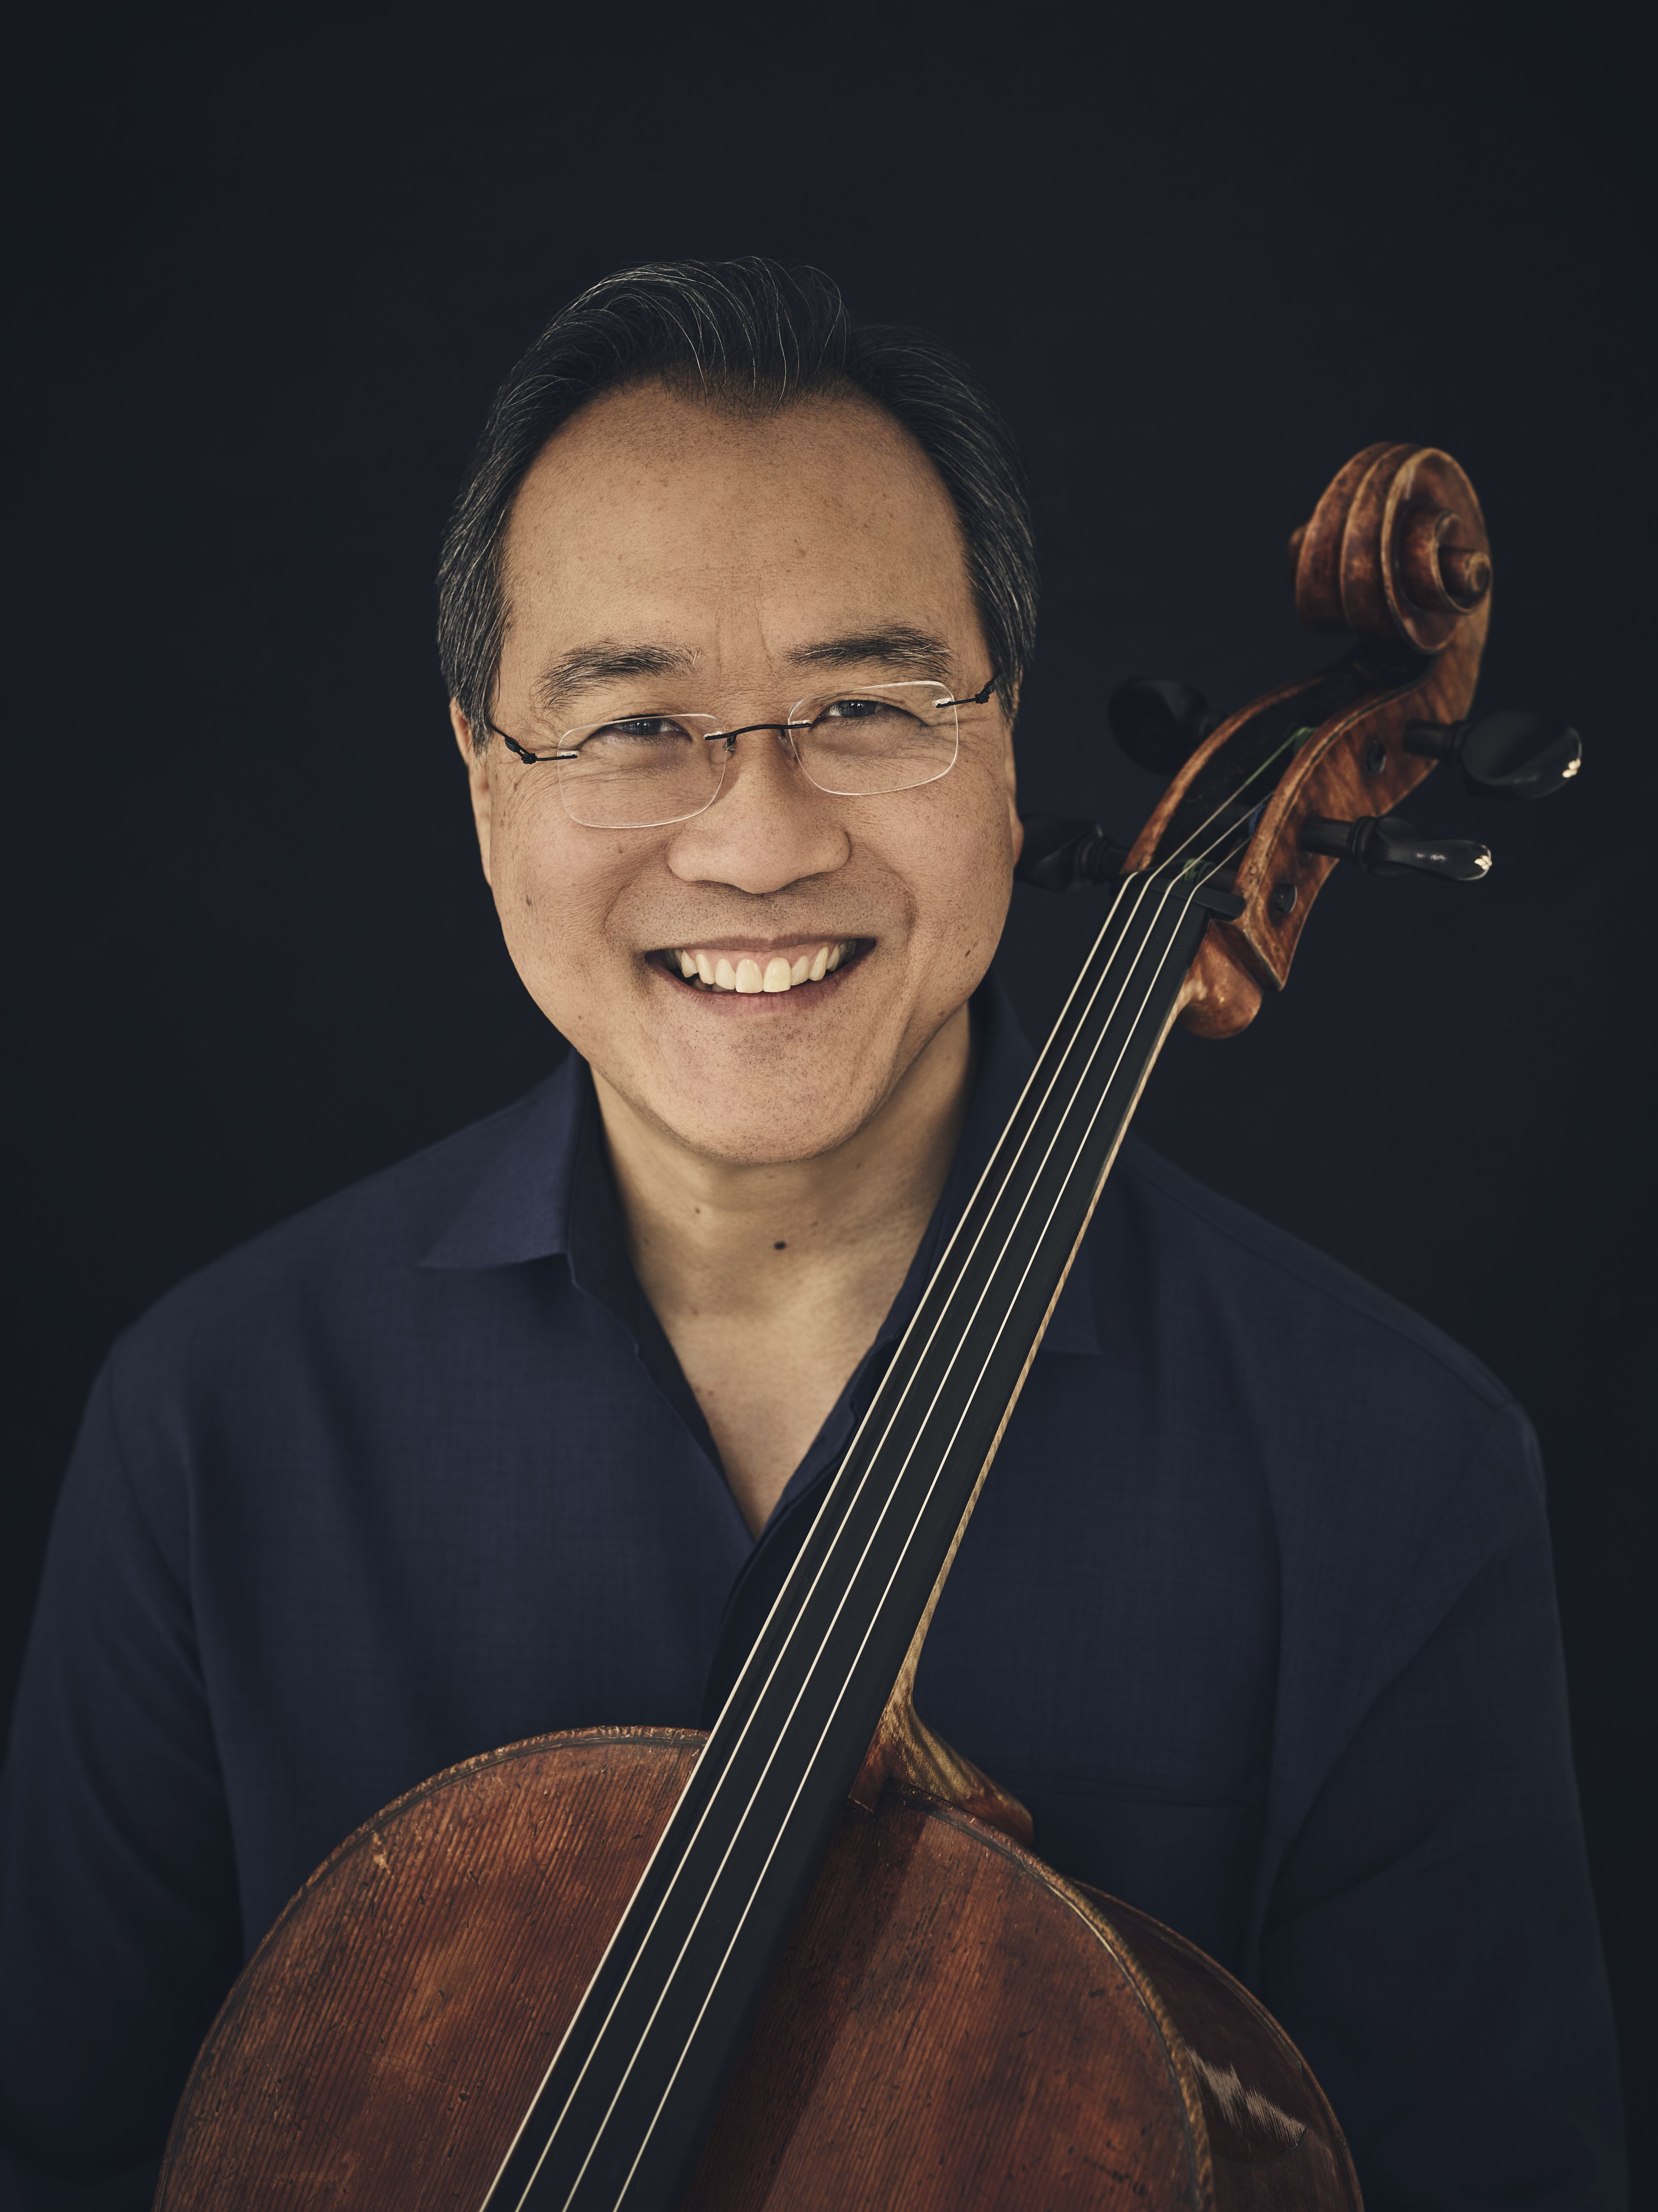 The Christmas Revels 2020 Announced With Special Guest Yo-Yo Ma